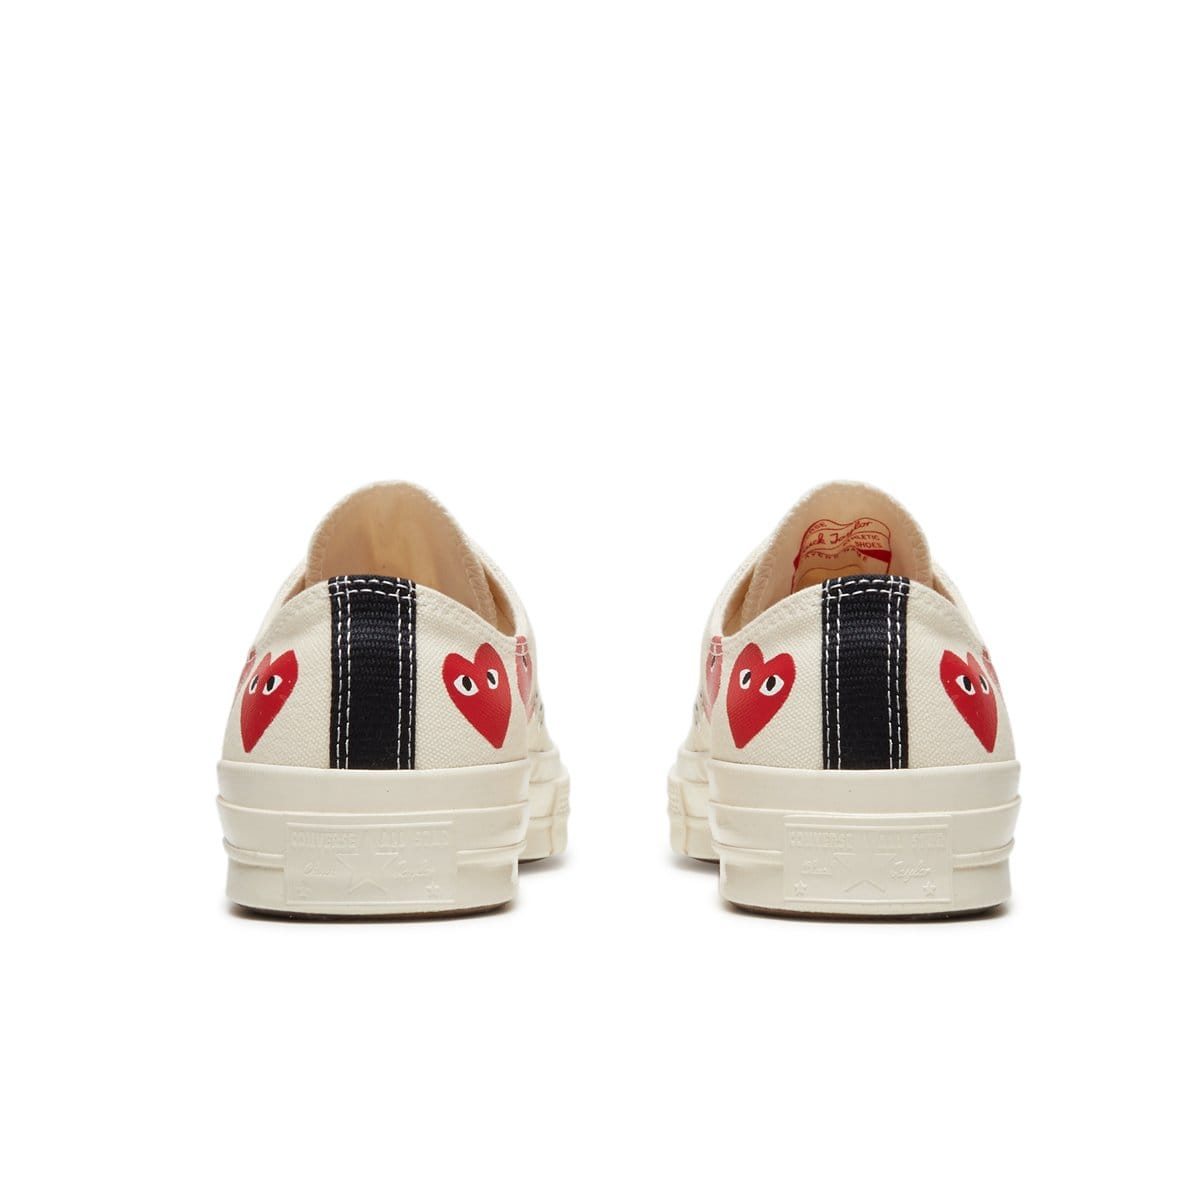 Converse Shoes x CDG Play CHUCK TAYLOR LOW